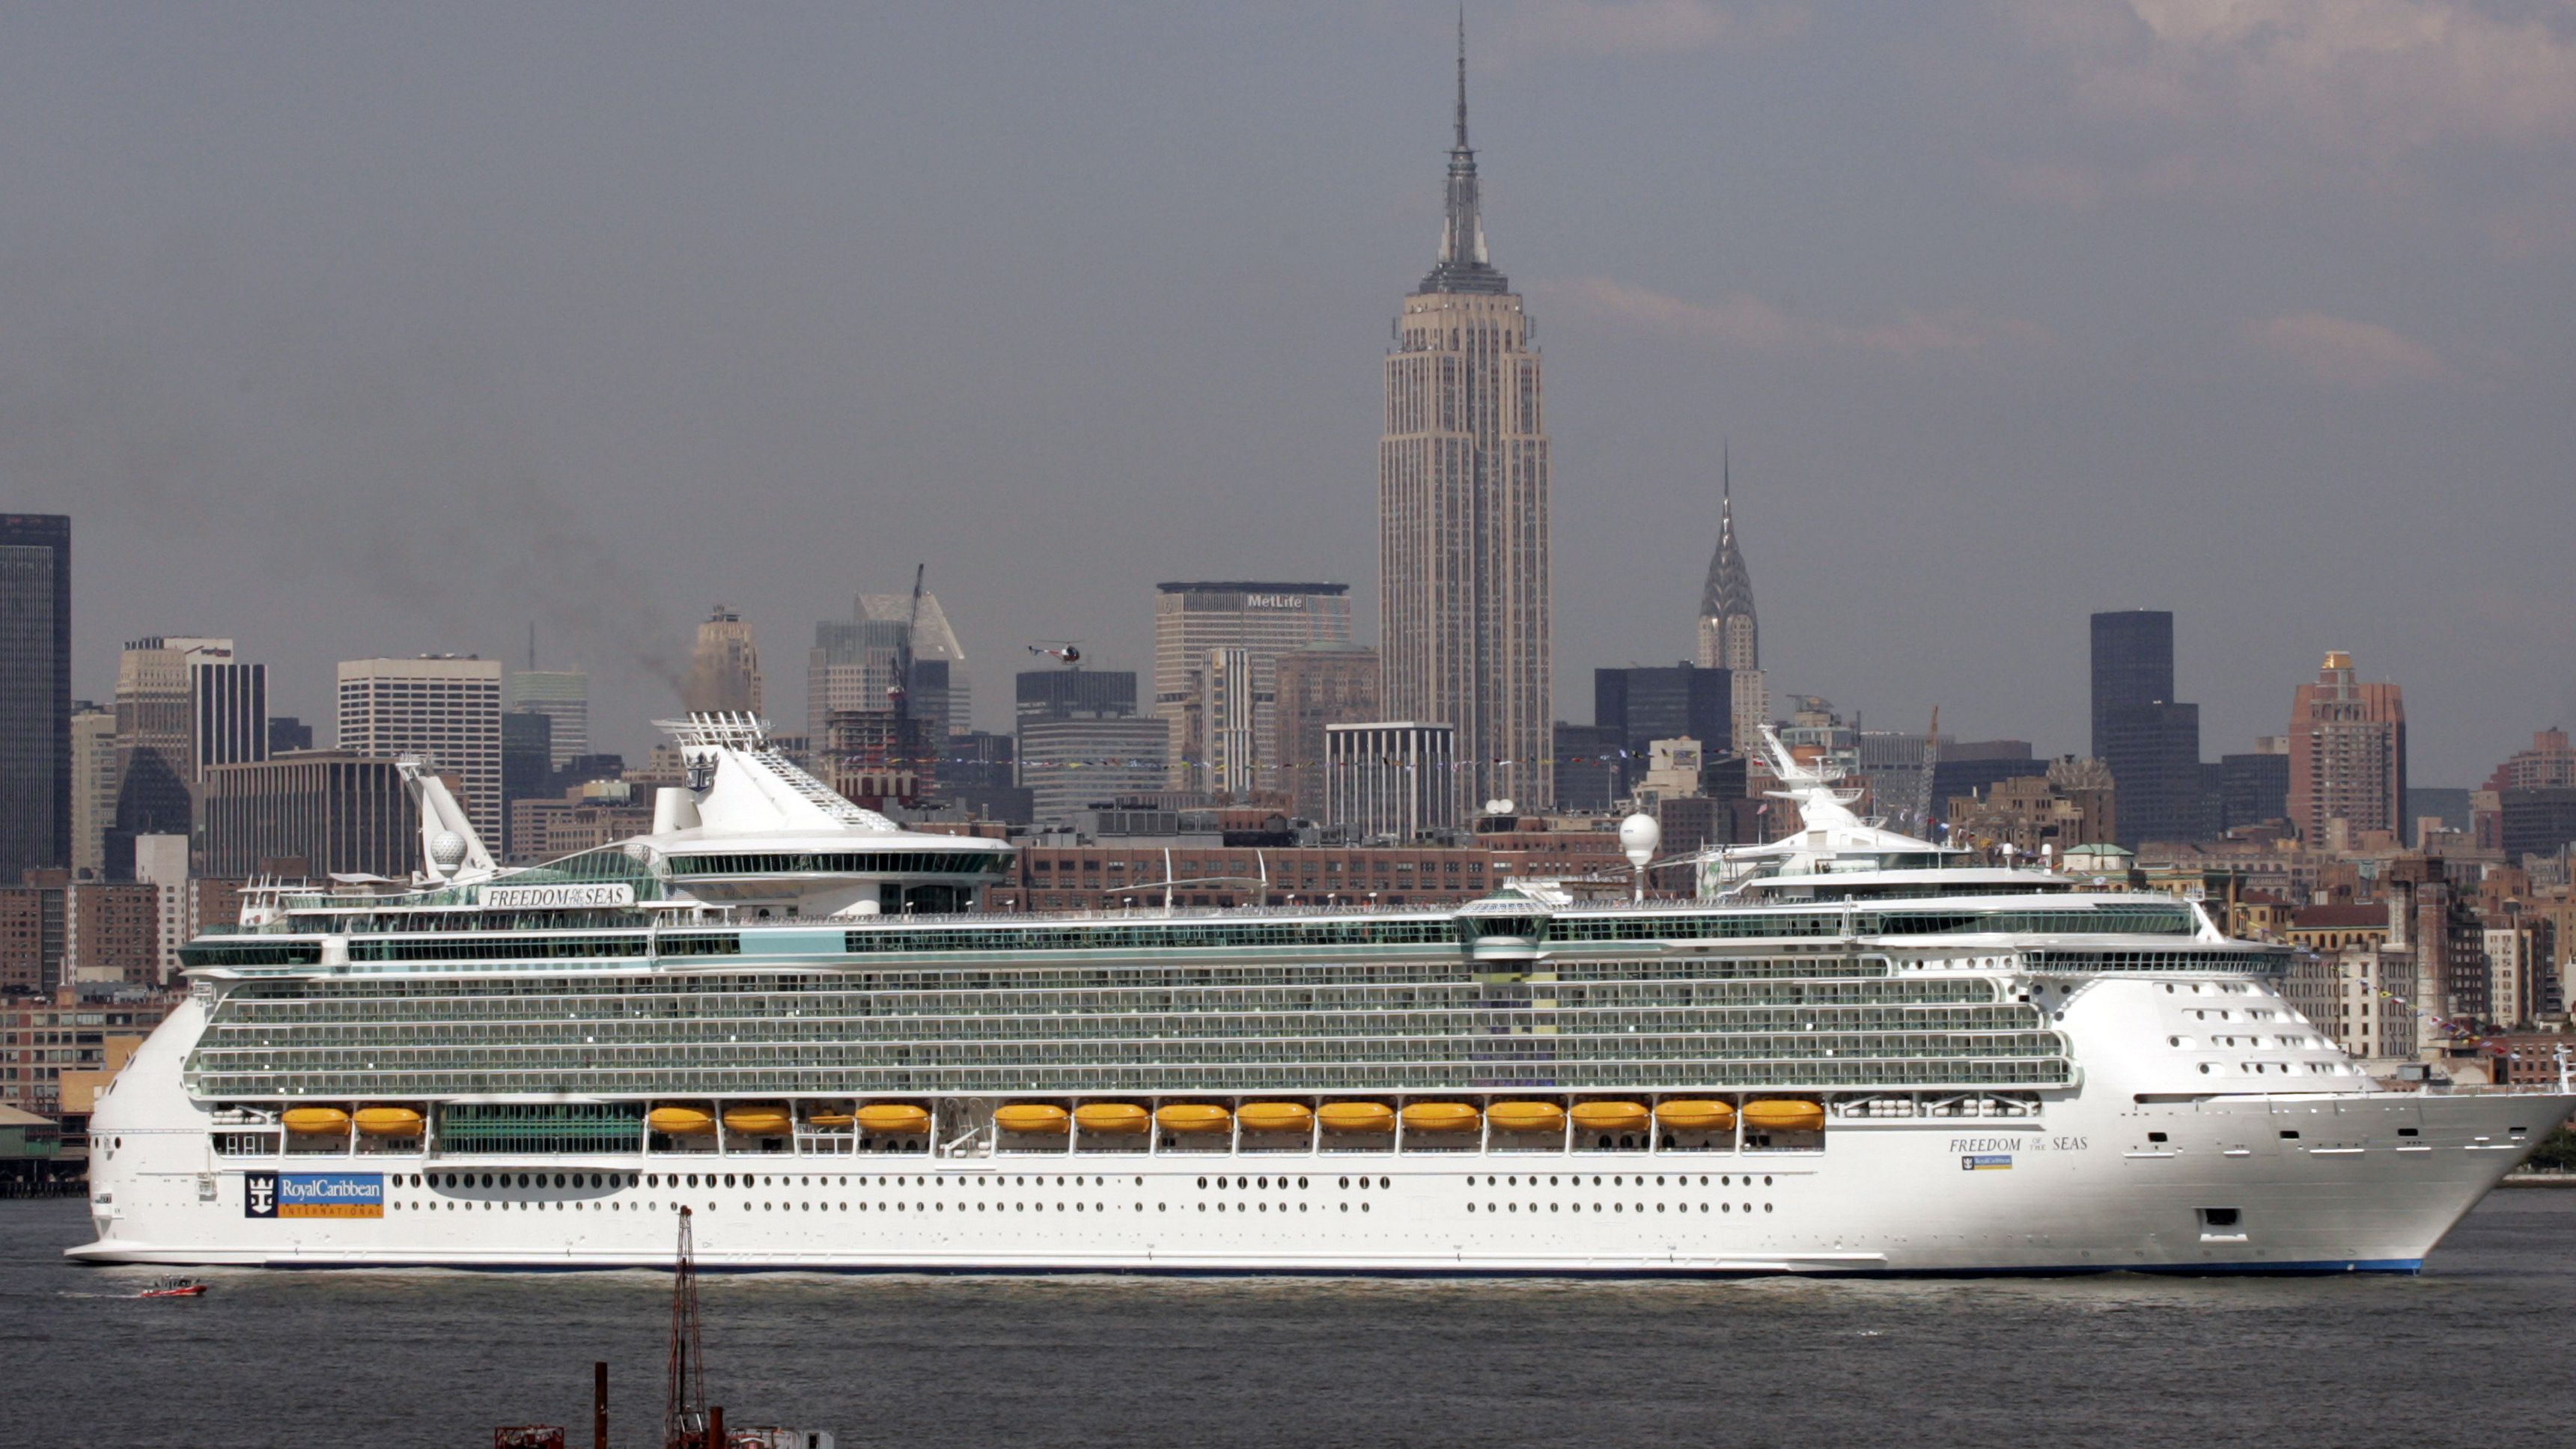 Cruise Ships Dump 1 Billion Gallons Of Sewage Into The Ocean Every